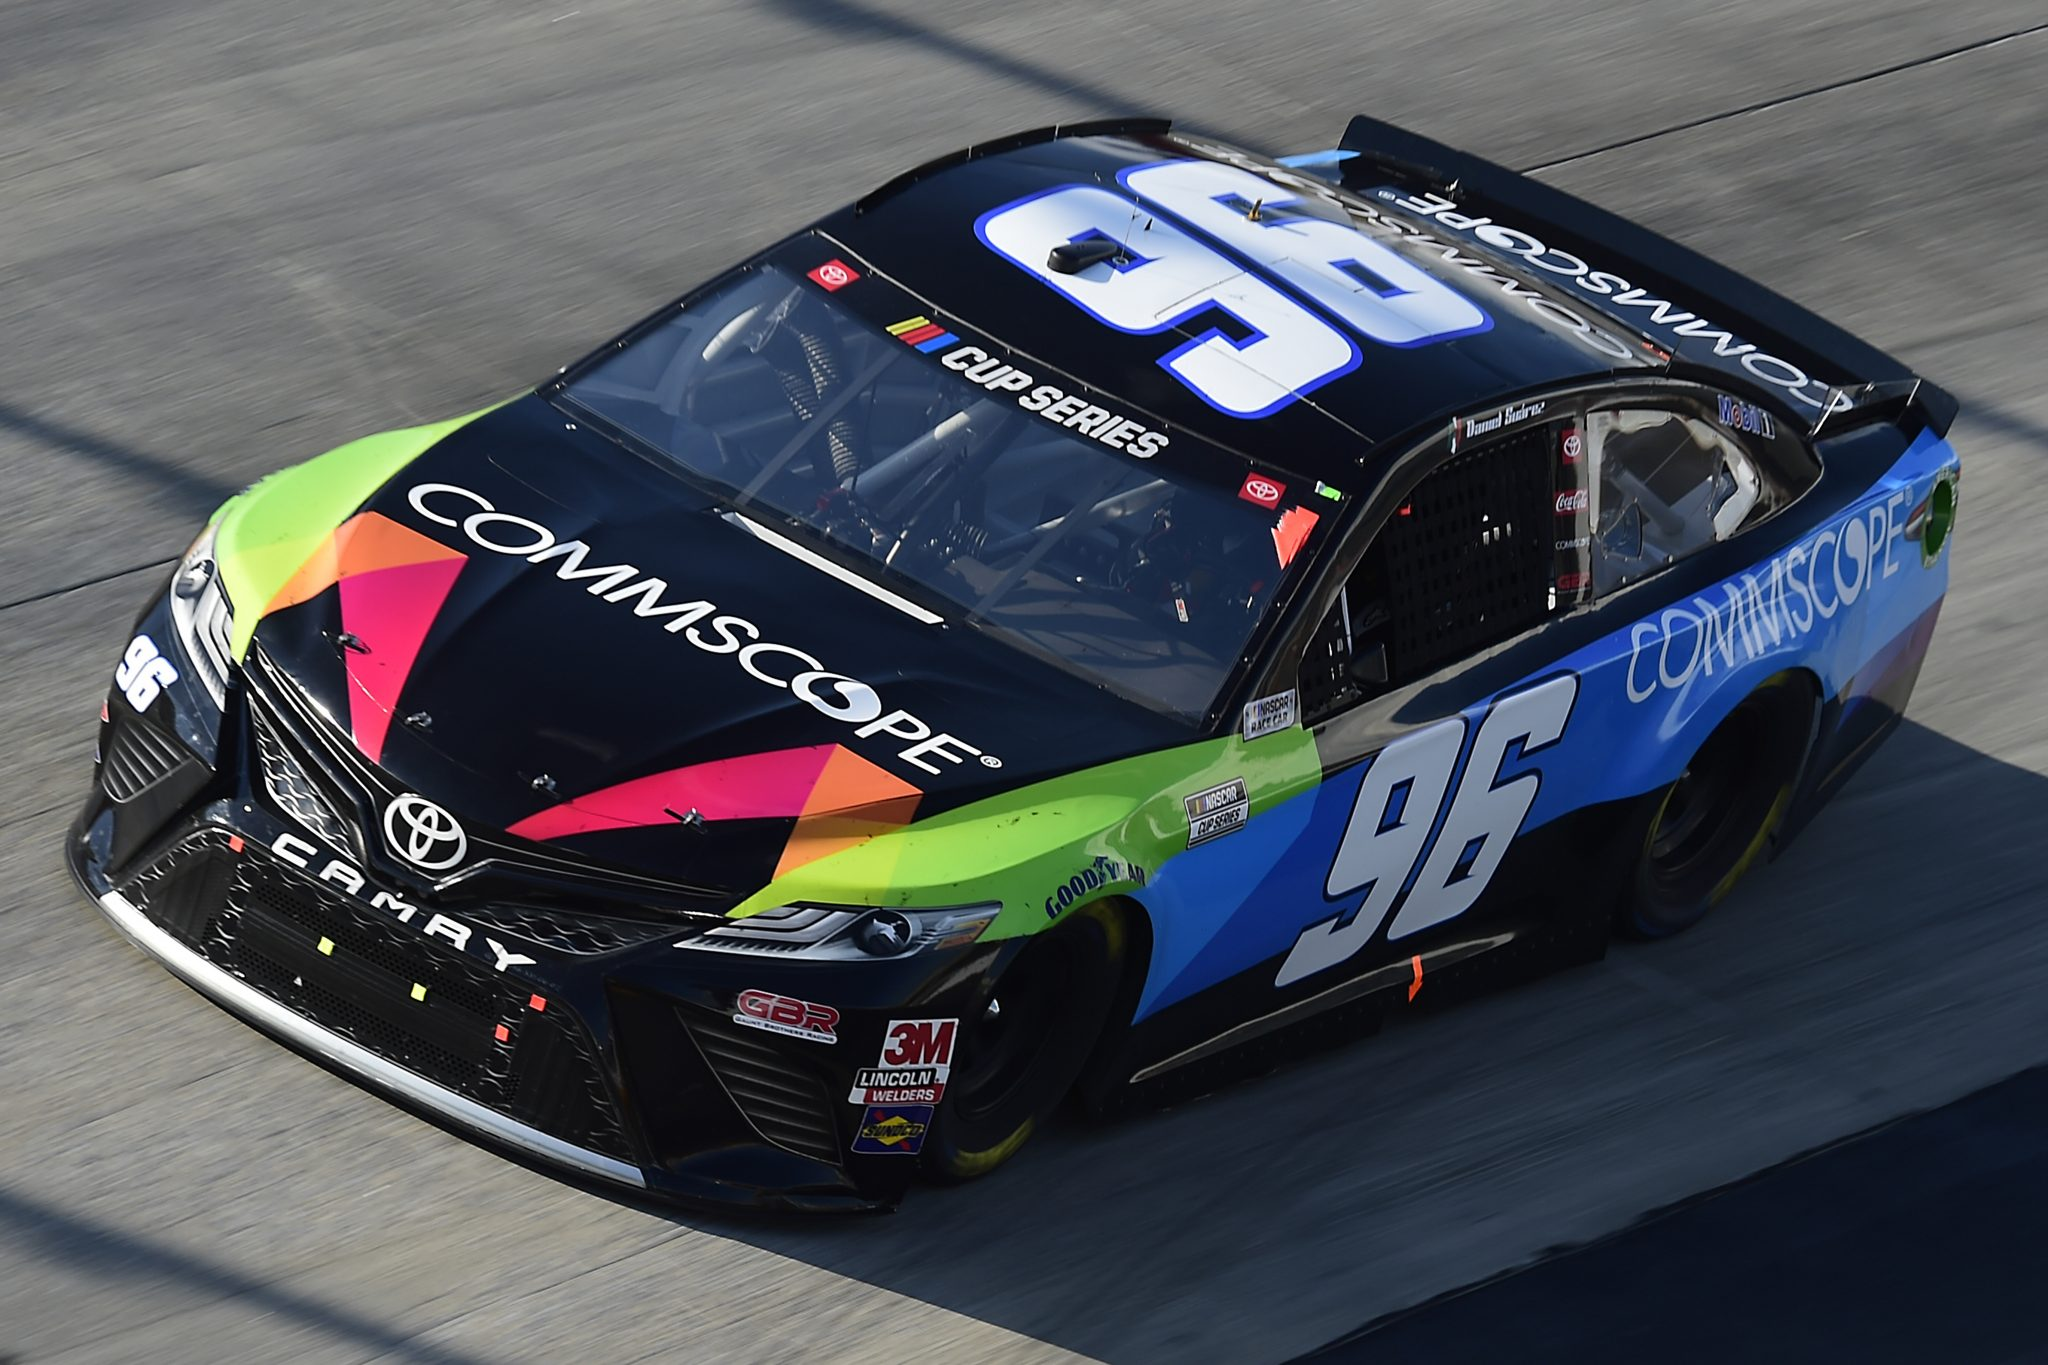 DOVER, DELAWARE - AUGUST 23: Daniel Suarez, driver of the #96 CommScope Toyota, drives during the NASCAR Cup Series Drydene 311 at Dover International Speedway on August 23, 2020 in Dover, Delaware. (Photo by Jared C. Tilton/Getty Images) | Getty Images